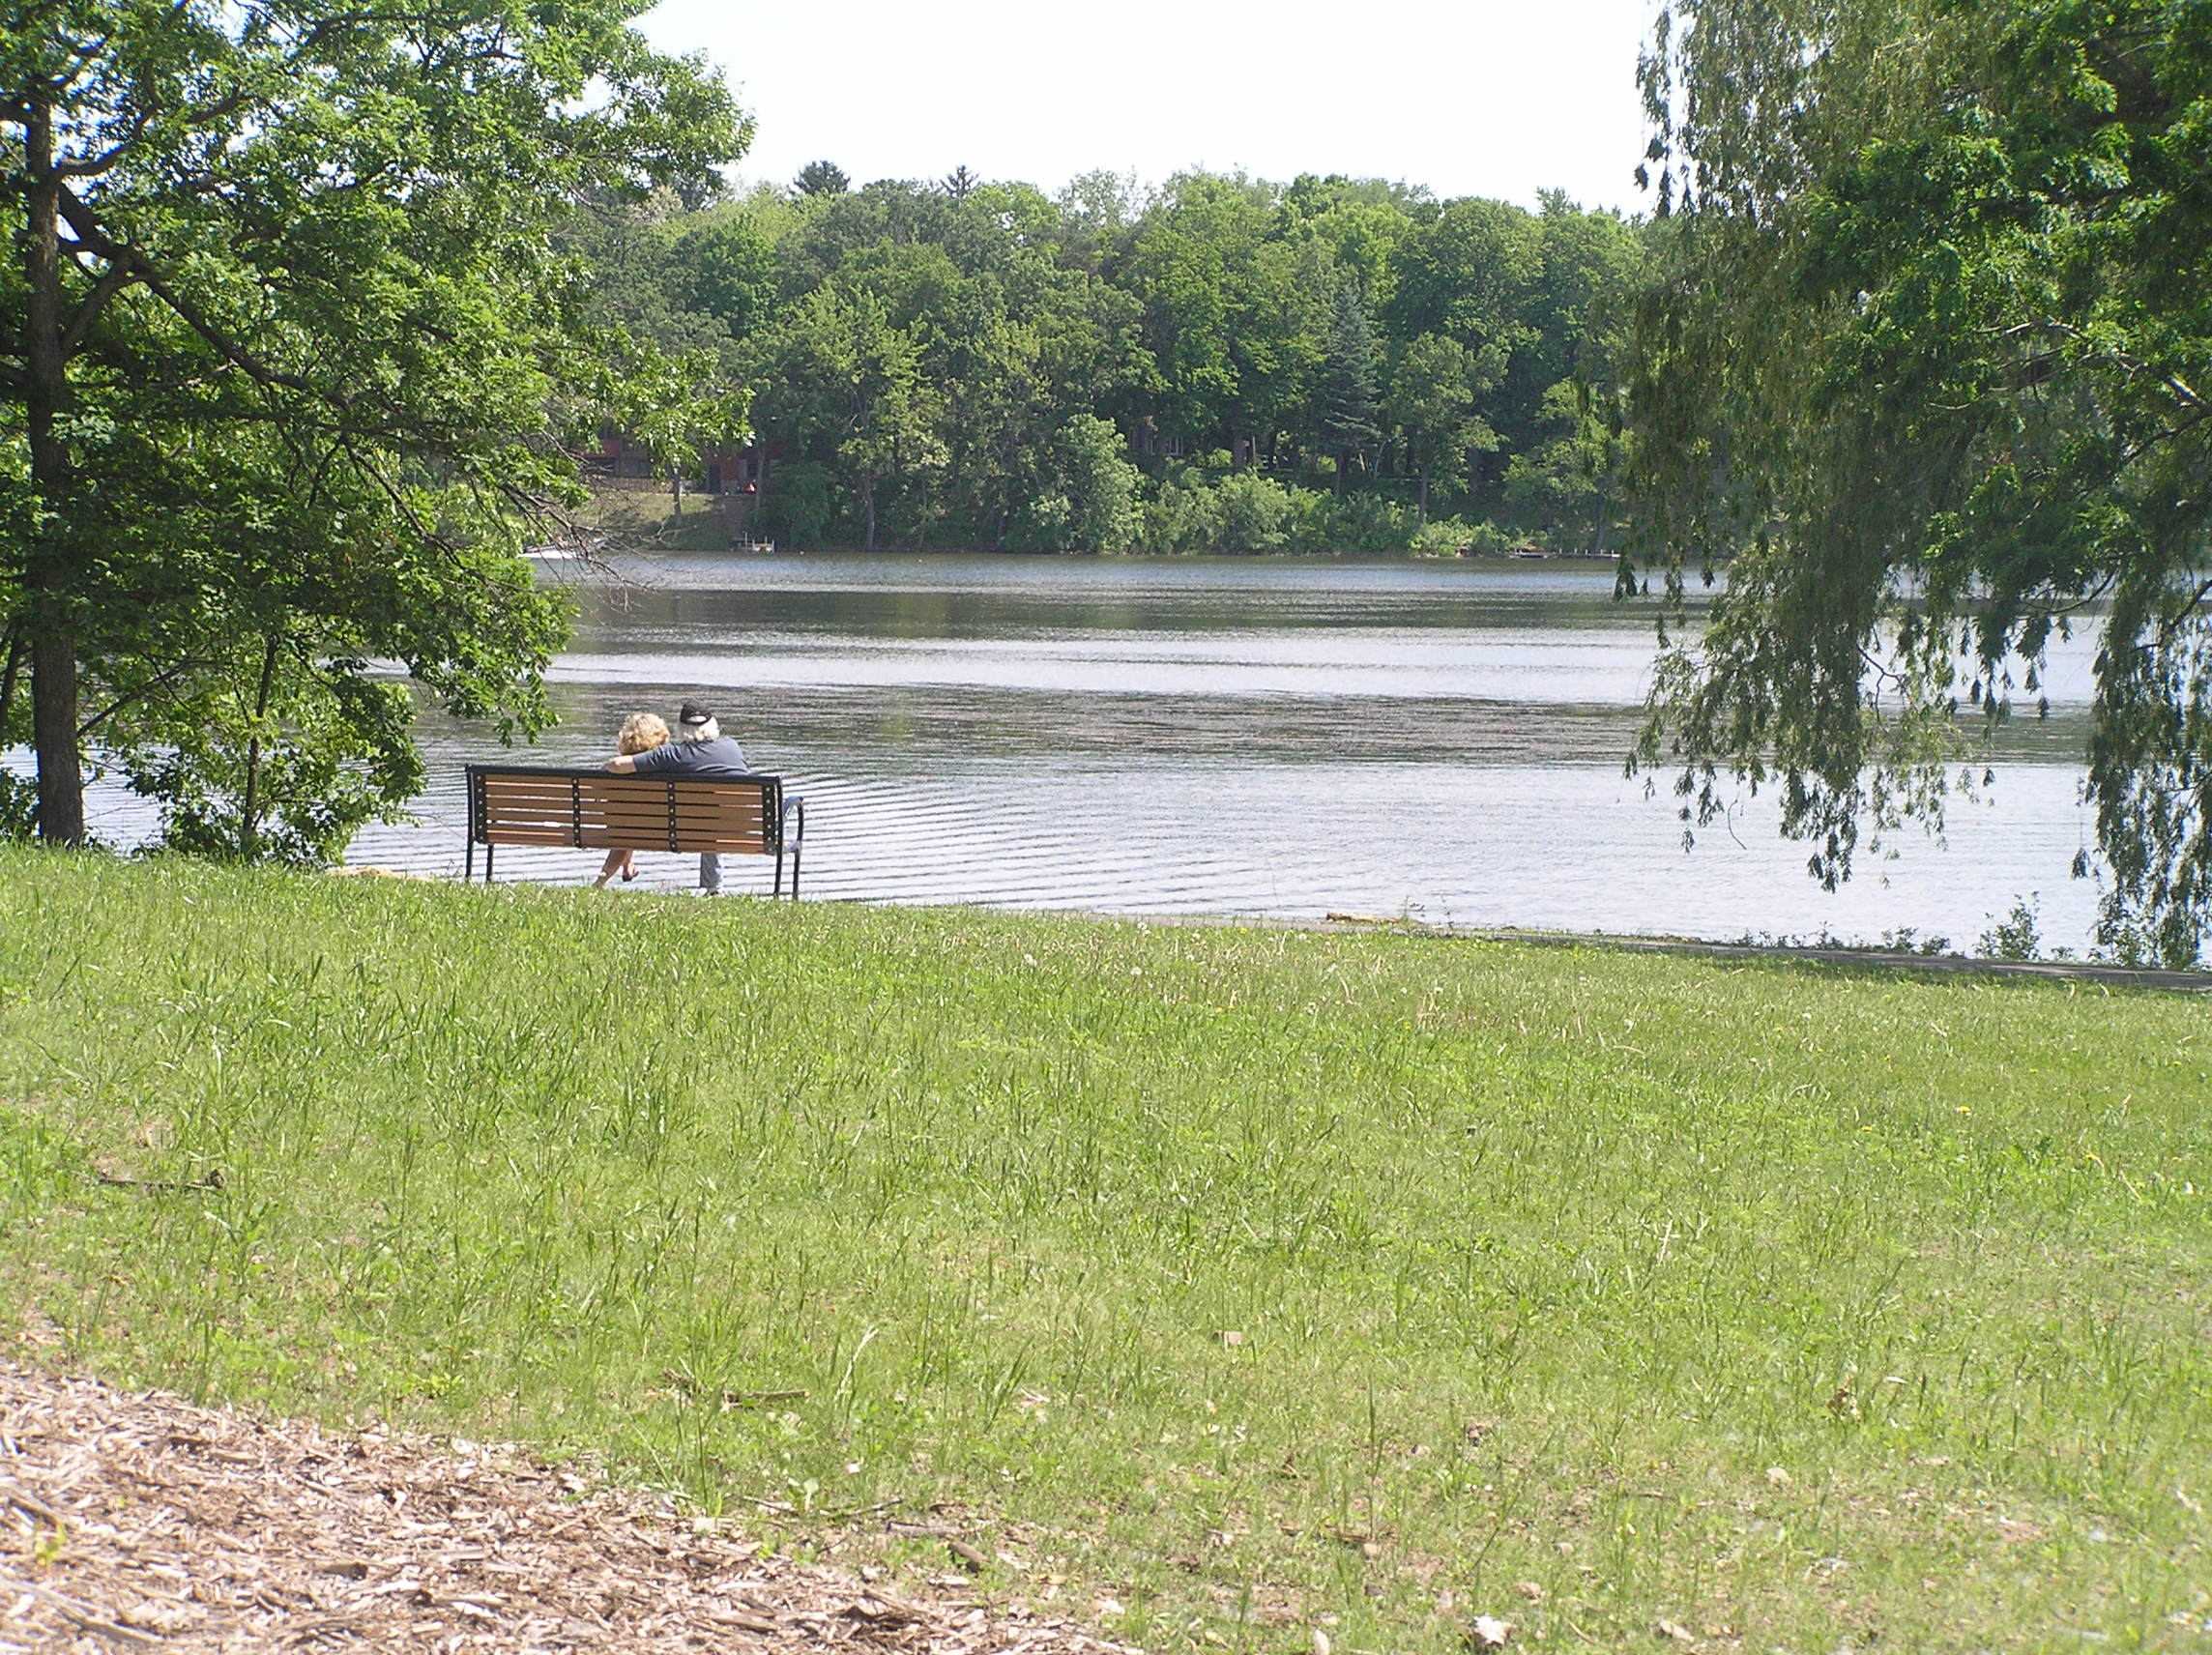 Two People Sitting on a Bench by a Lake